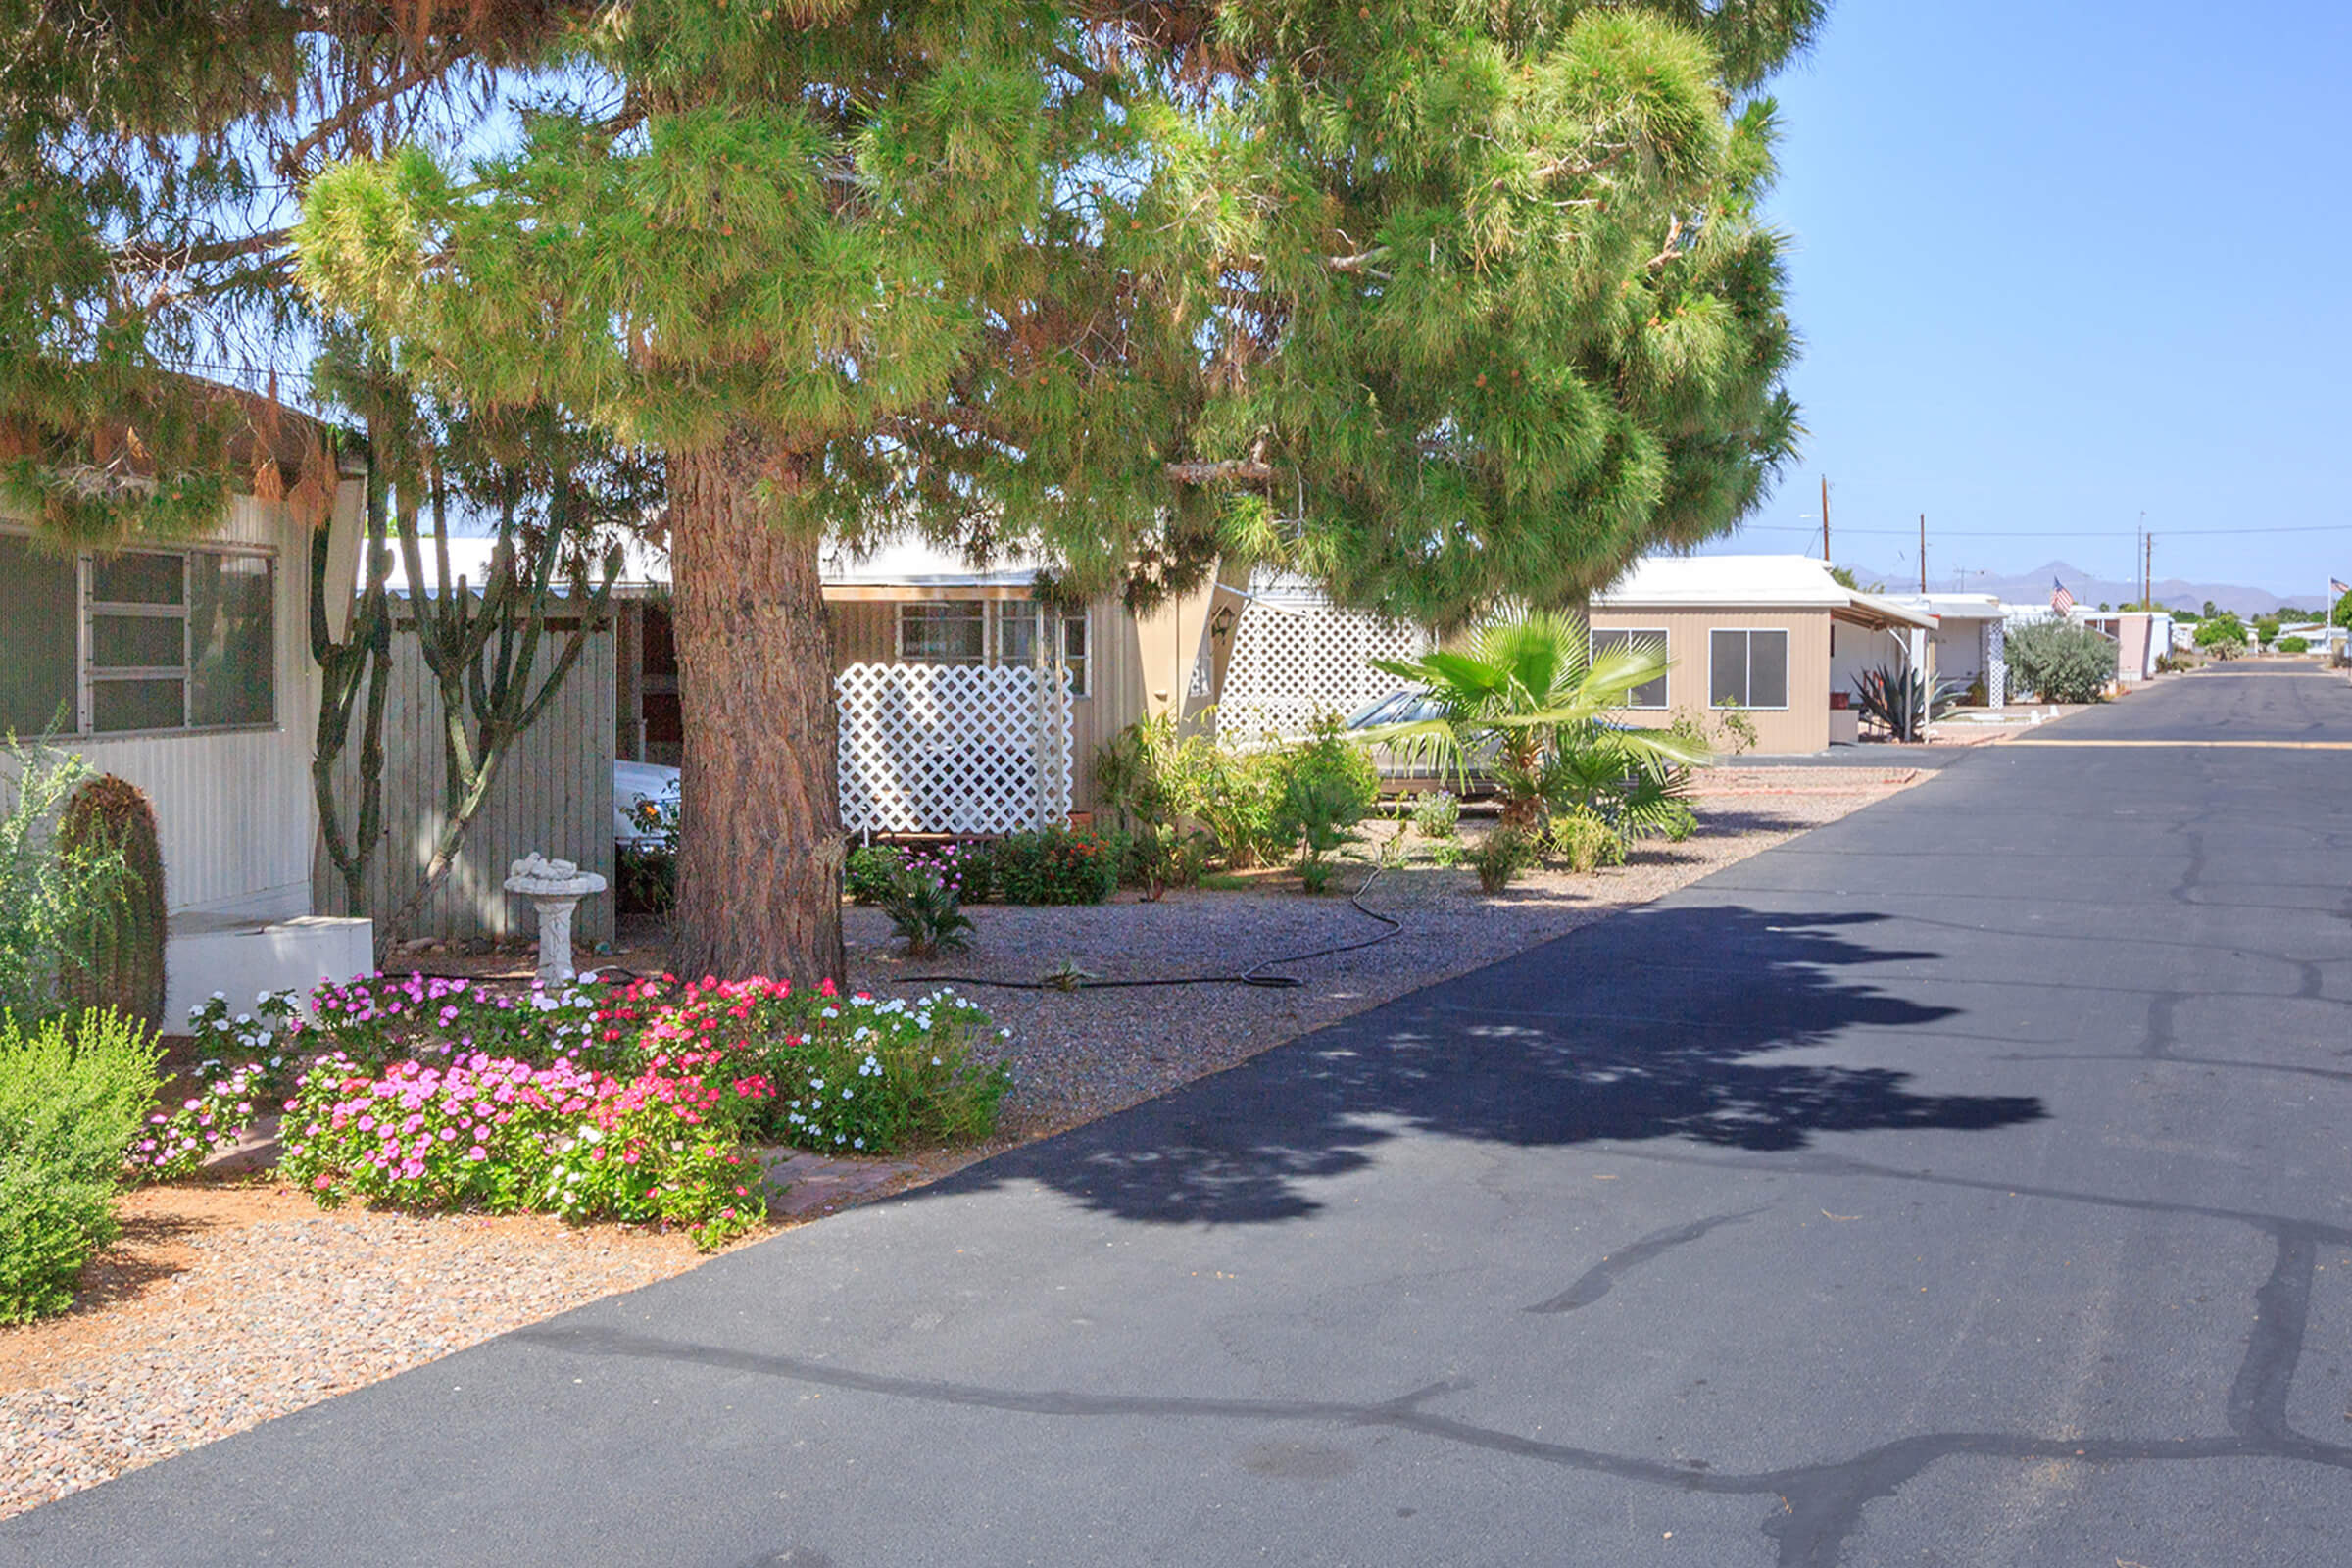 Picture of Primrose Estates Mobile Home Park